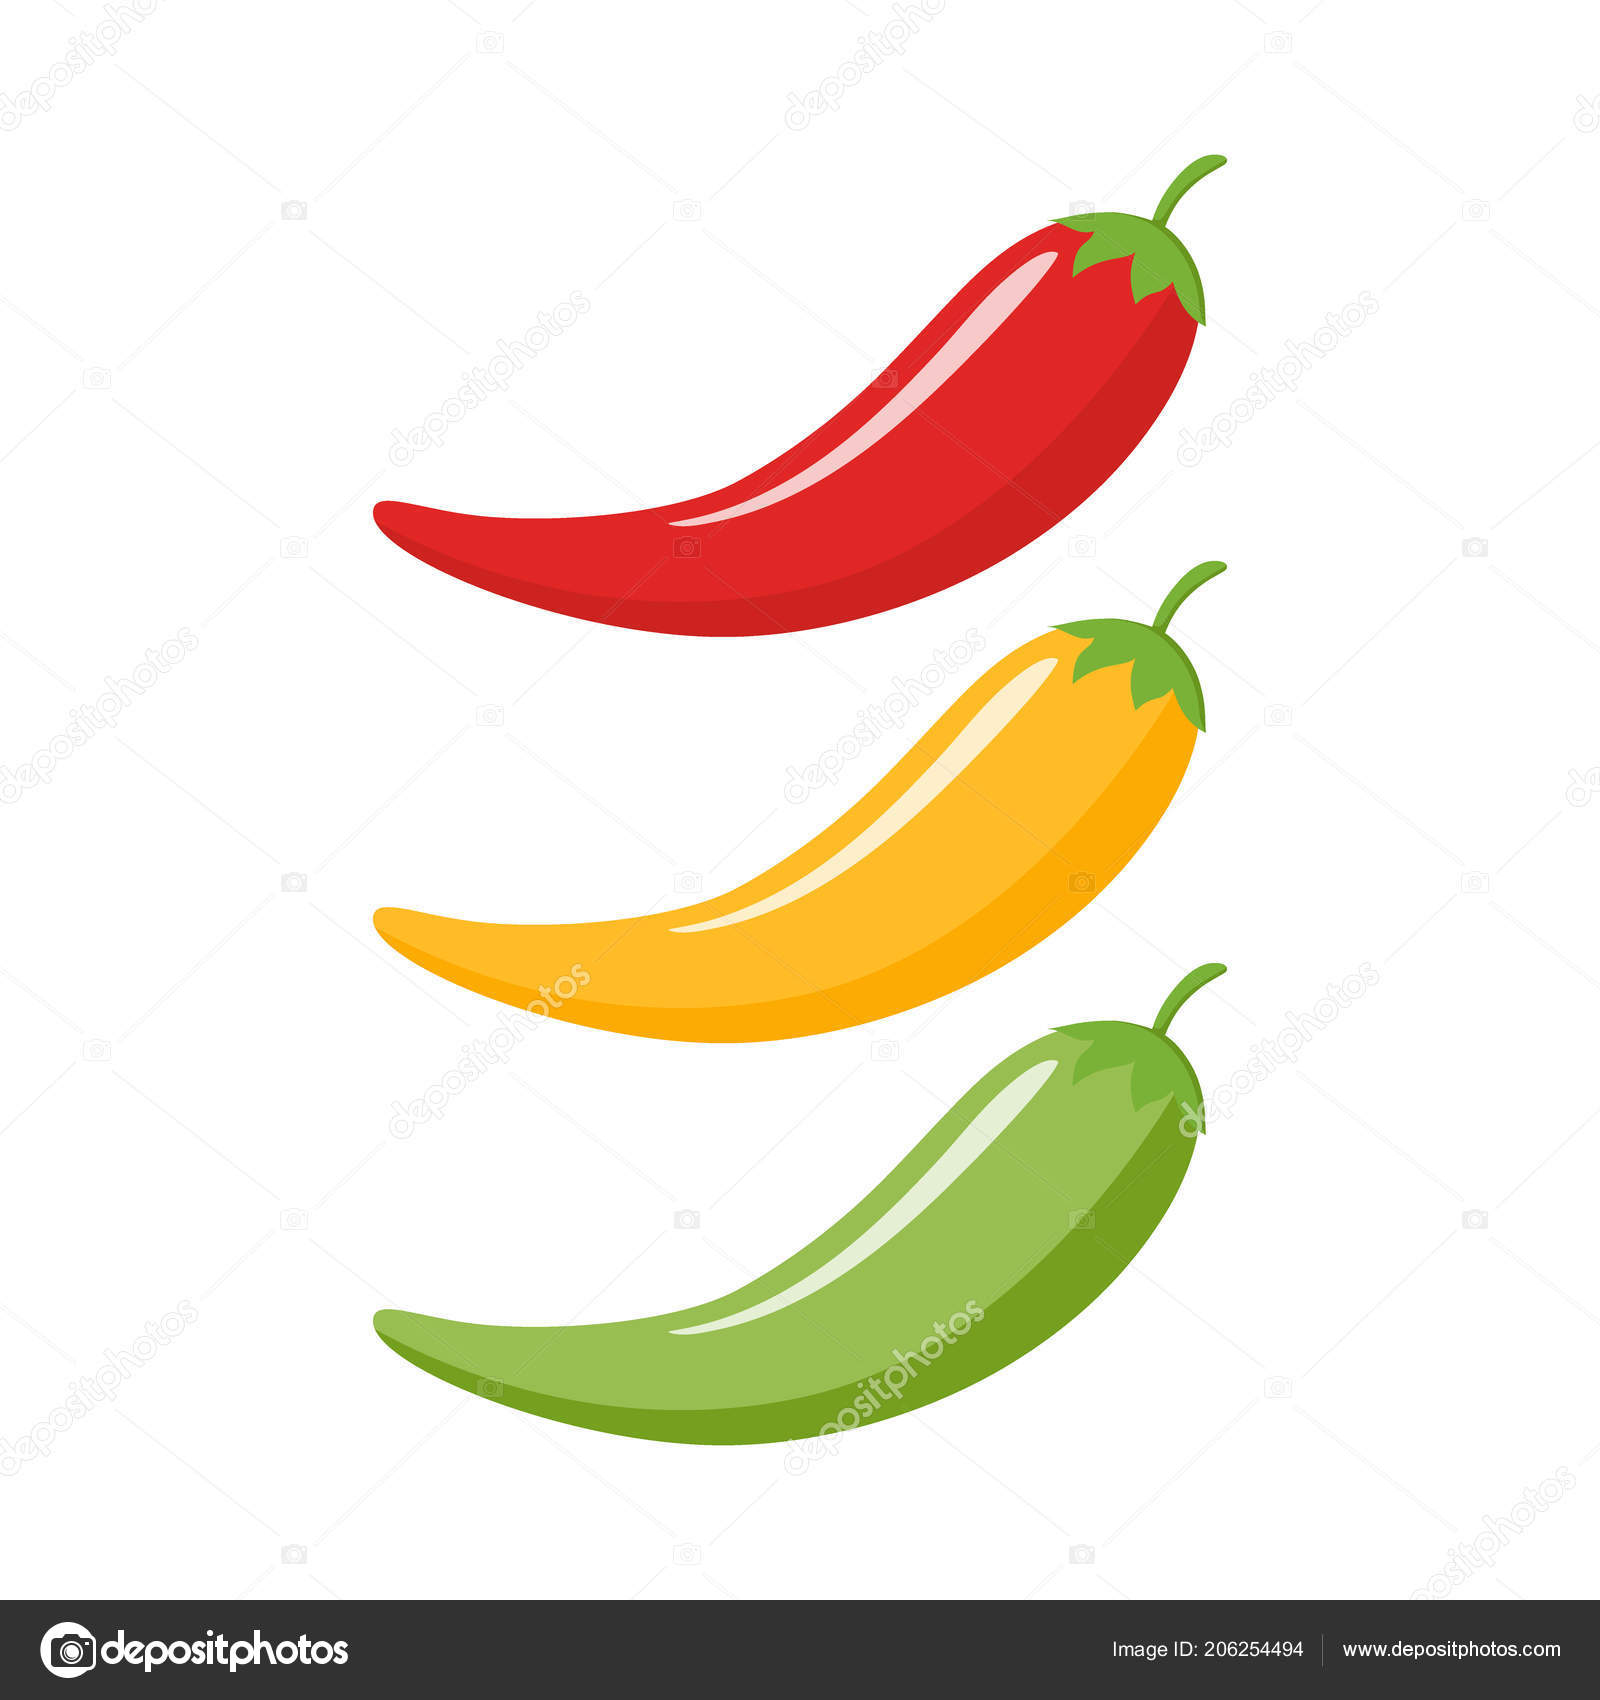 Clipart: chili peppers.